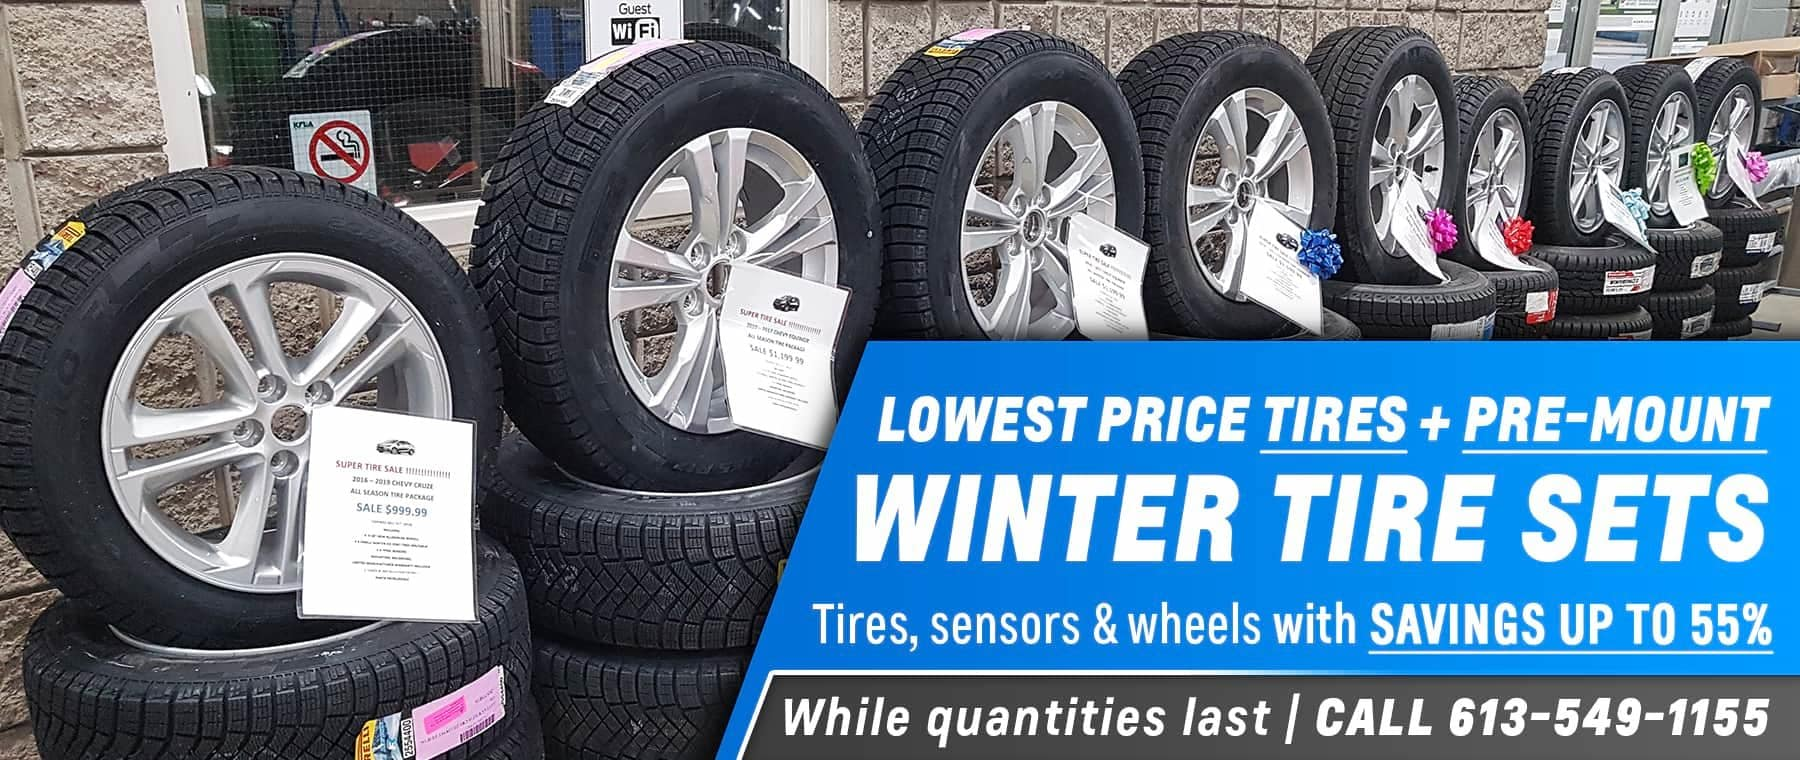 winter tires and pre-mount tire sets sale